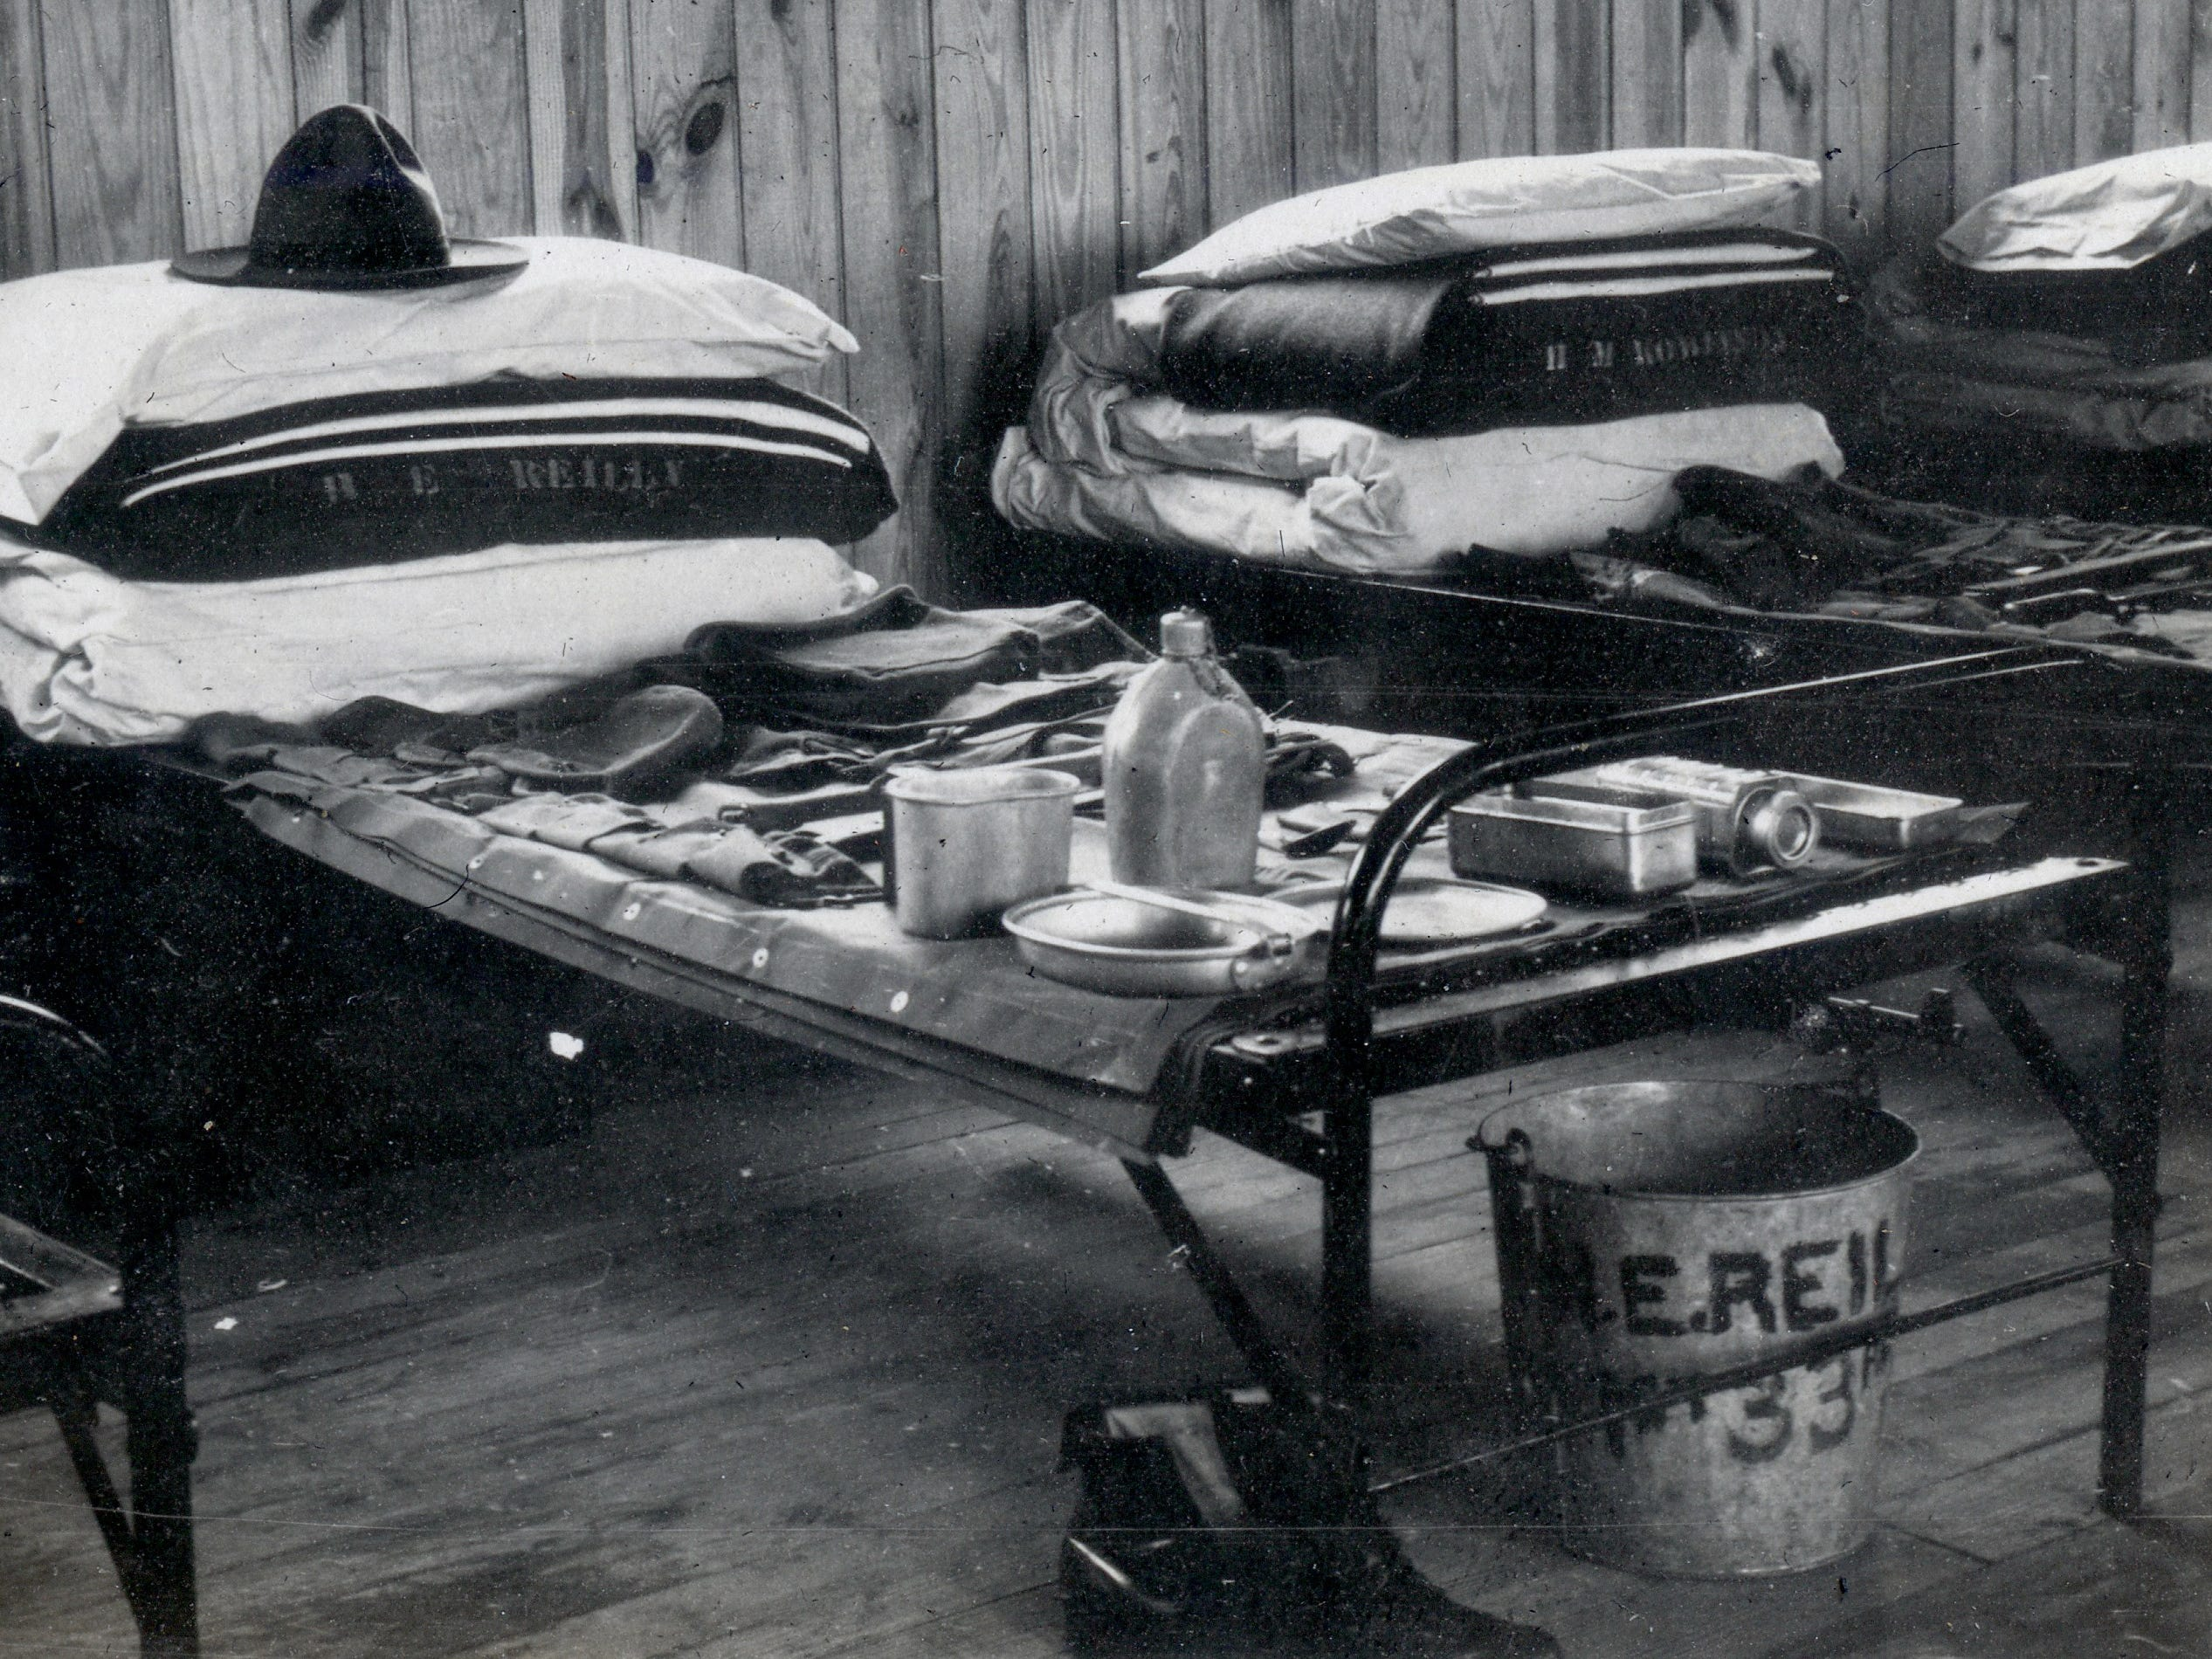 Harold Reilly's equipment laid out for inspection while at Quantico, VA. Reilly left Marquette University in May 1917 to enlist in the U.S. Marines where he was assigned to the 81st Co., 6th Machine Gun Battalion. His unit arrived in France on Dec. 28, 1917. In September 1918, he was wounded and hospitalized until Oct. 31 and returned to his unit. On Nov. 2 Reilly died by artillery, nine days before the end of World War 1. Reilly's parents did not learn of their loss until Nov. 20.